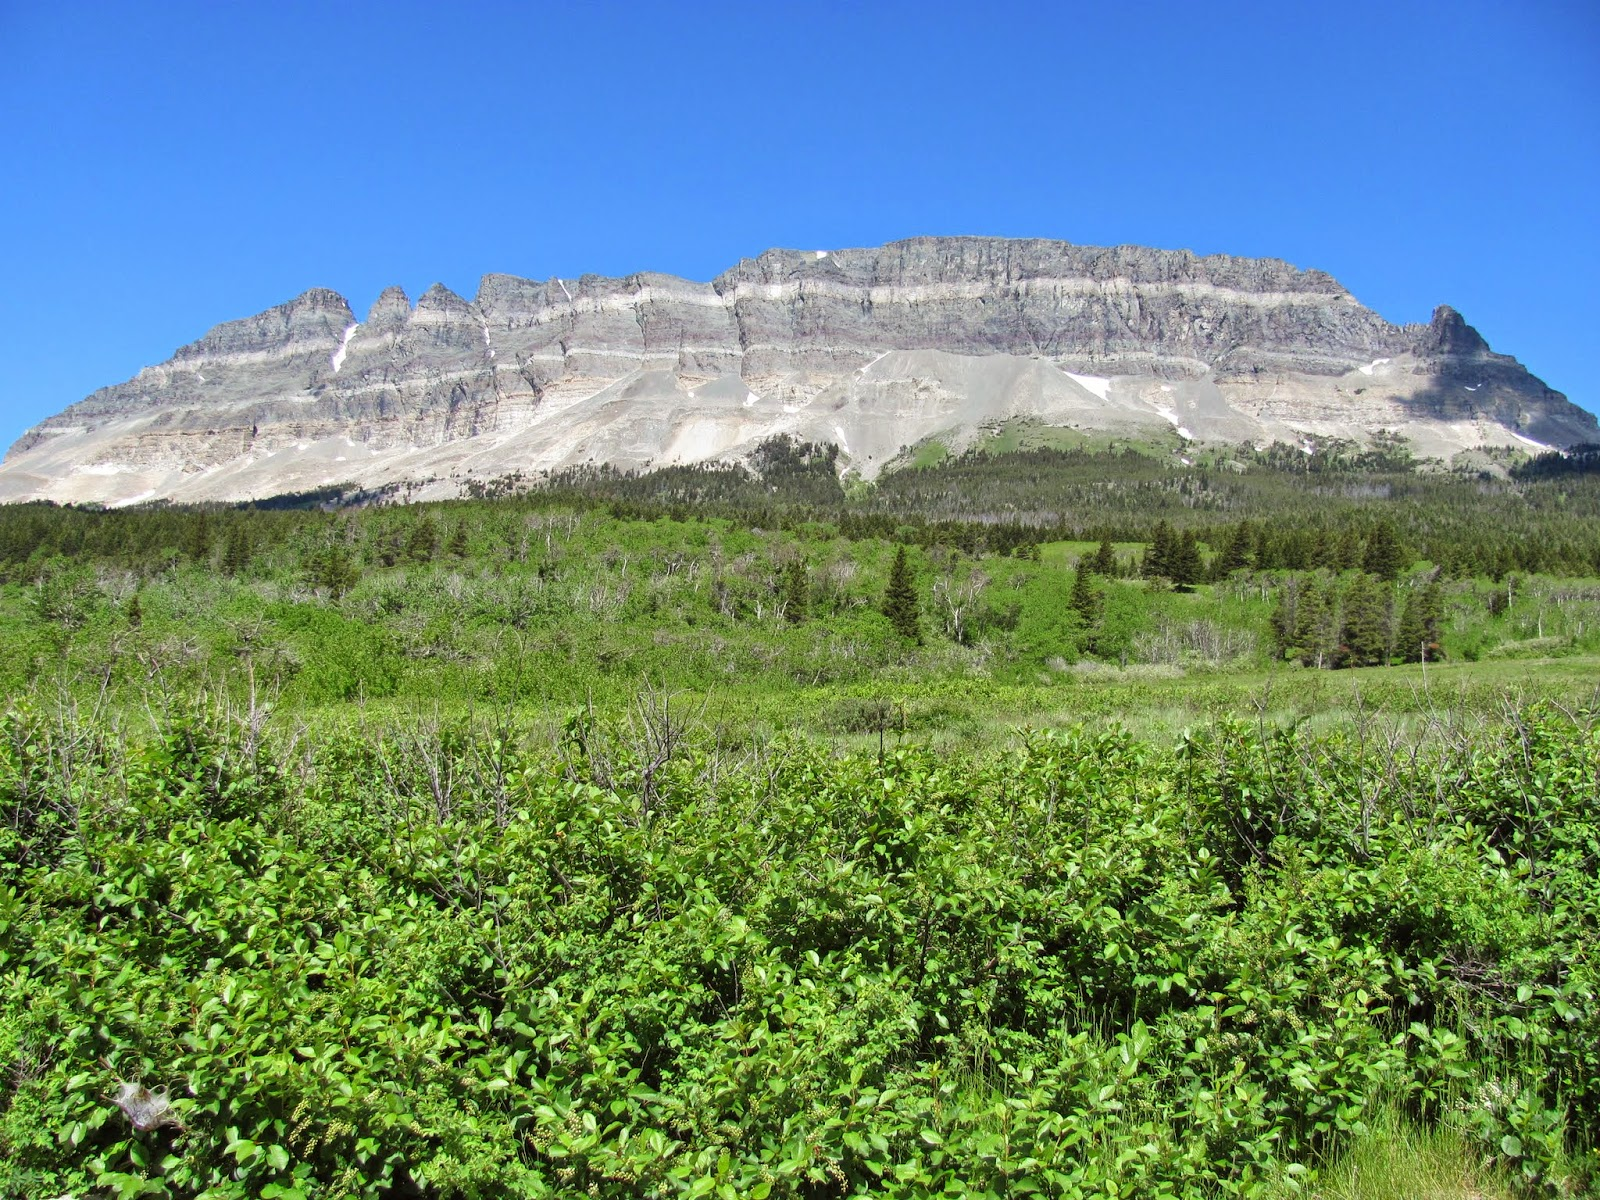 Two Dog Flats are a grassland area in Glacier National Park in Montana